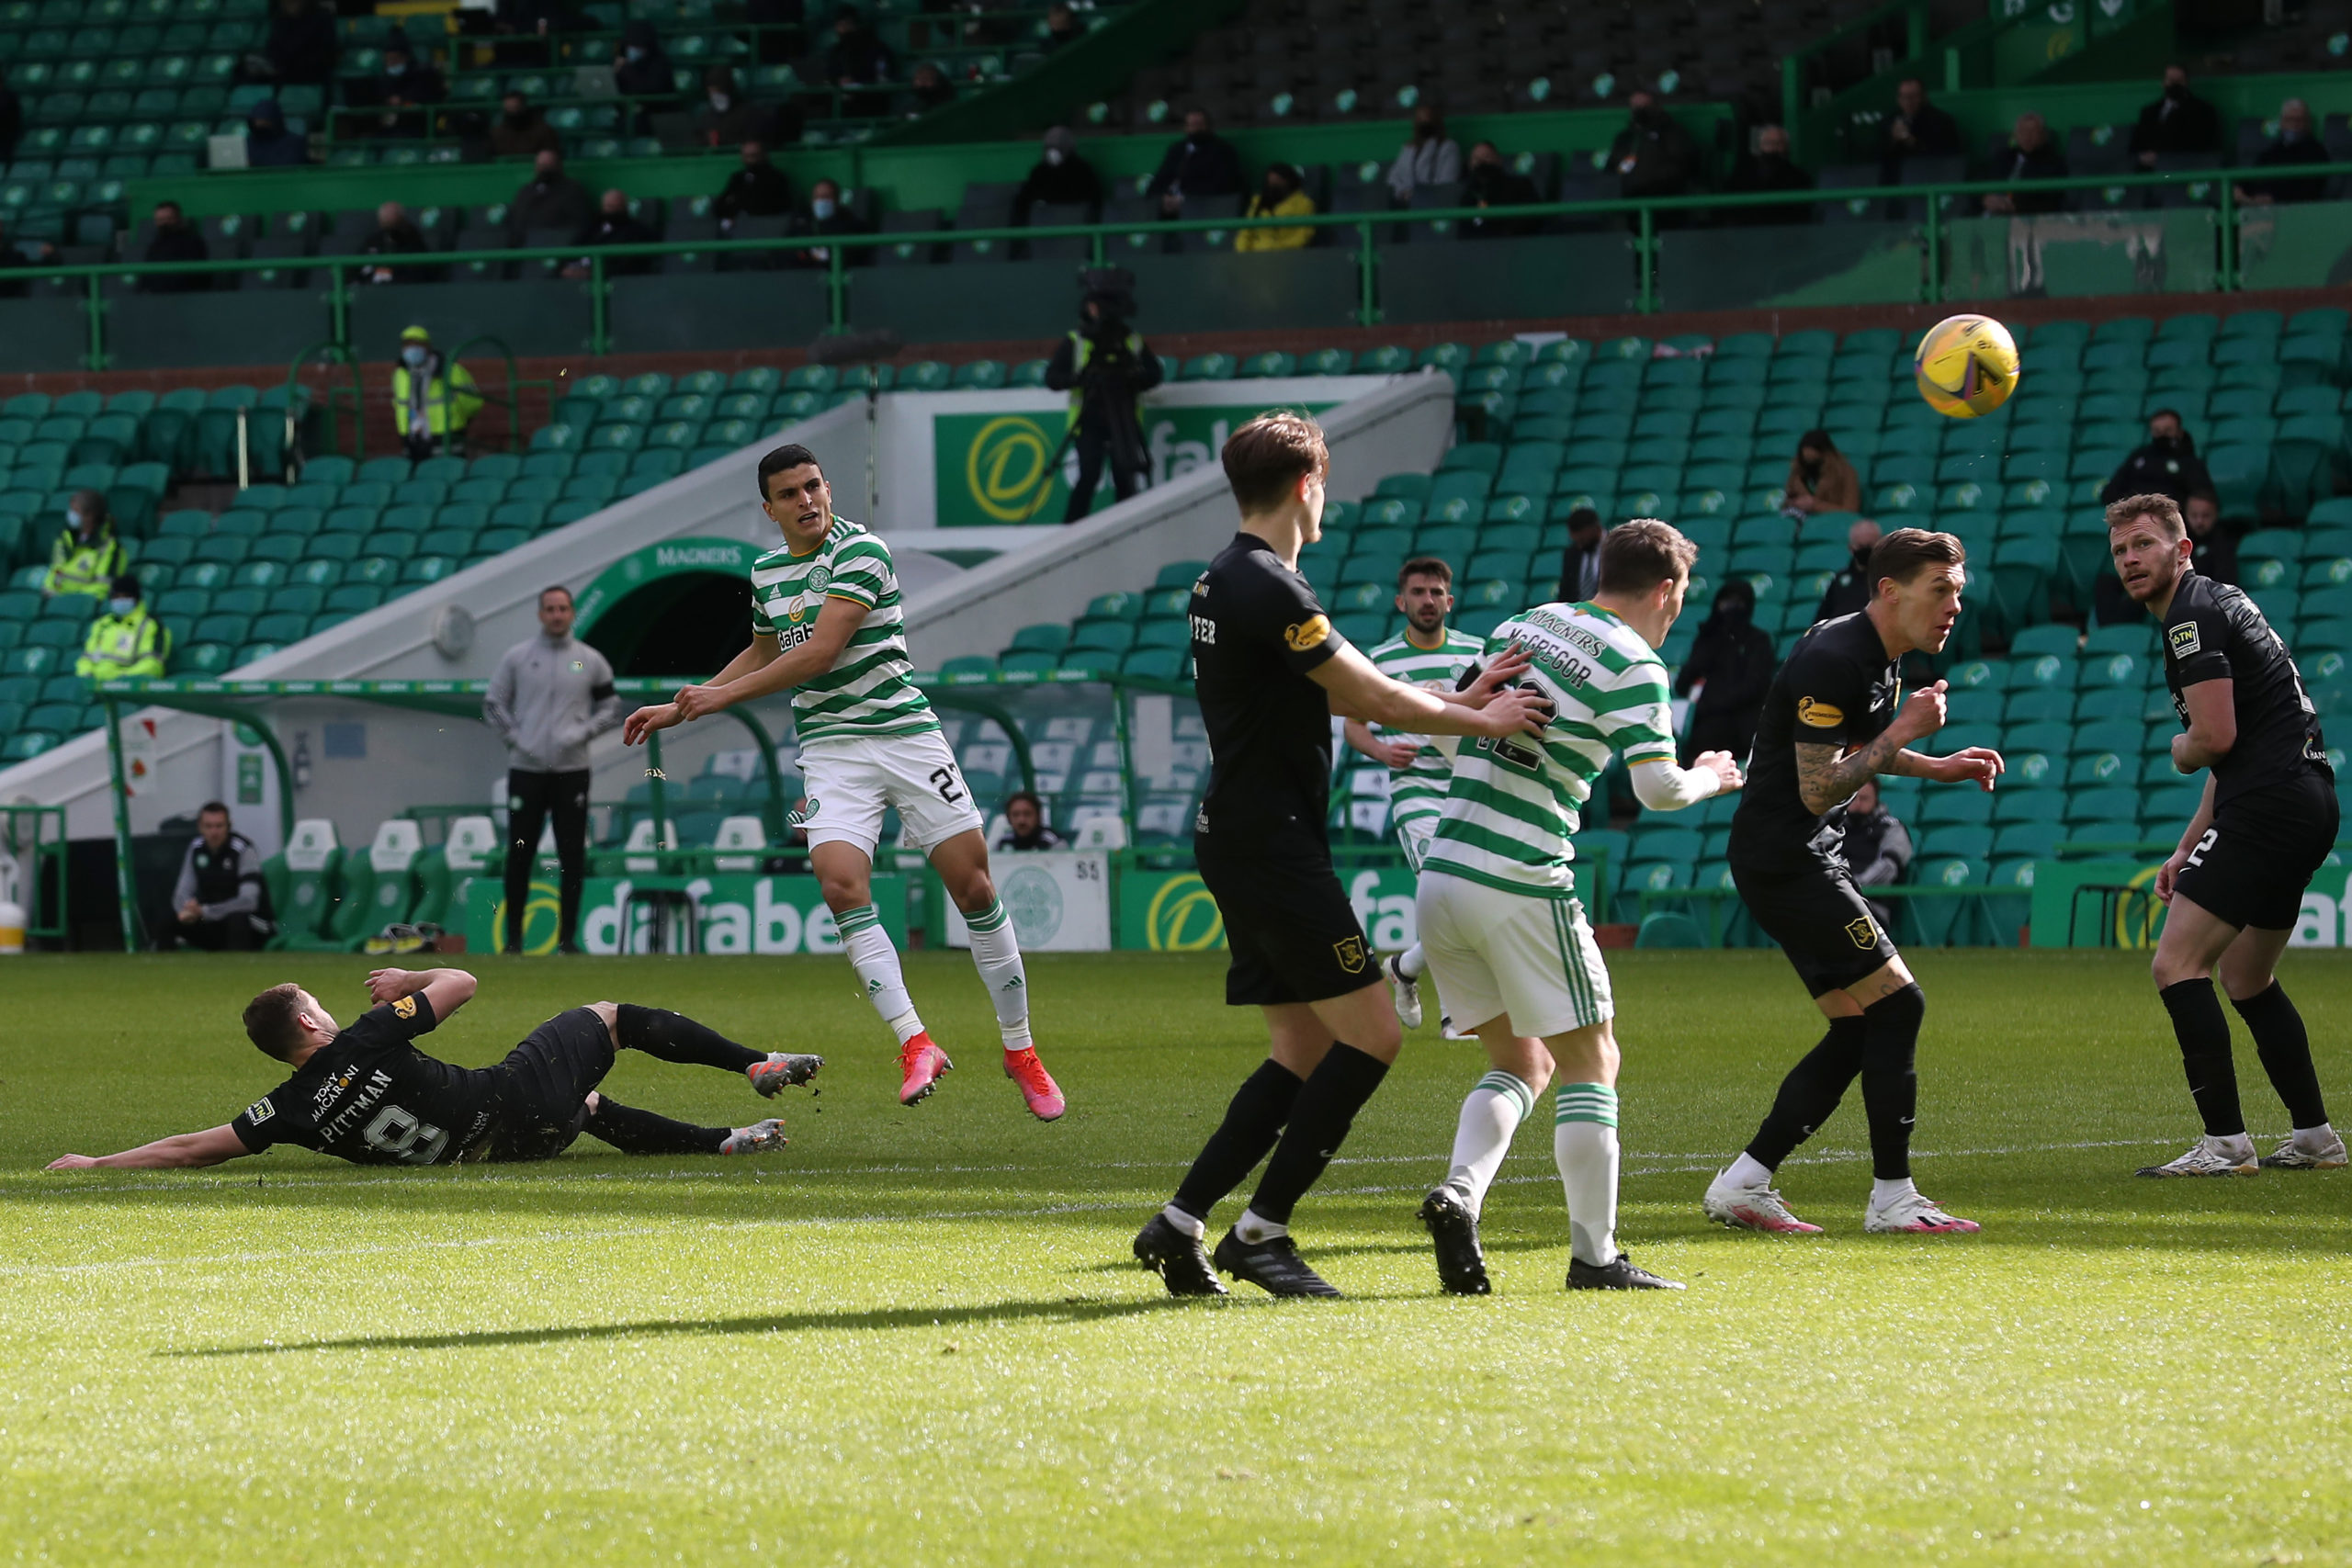 Celtic score another against Livingston